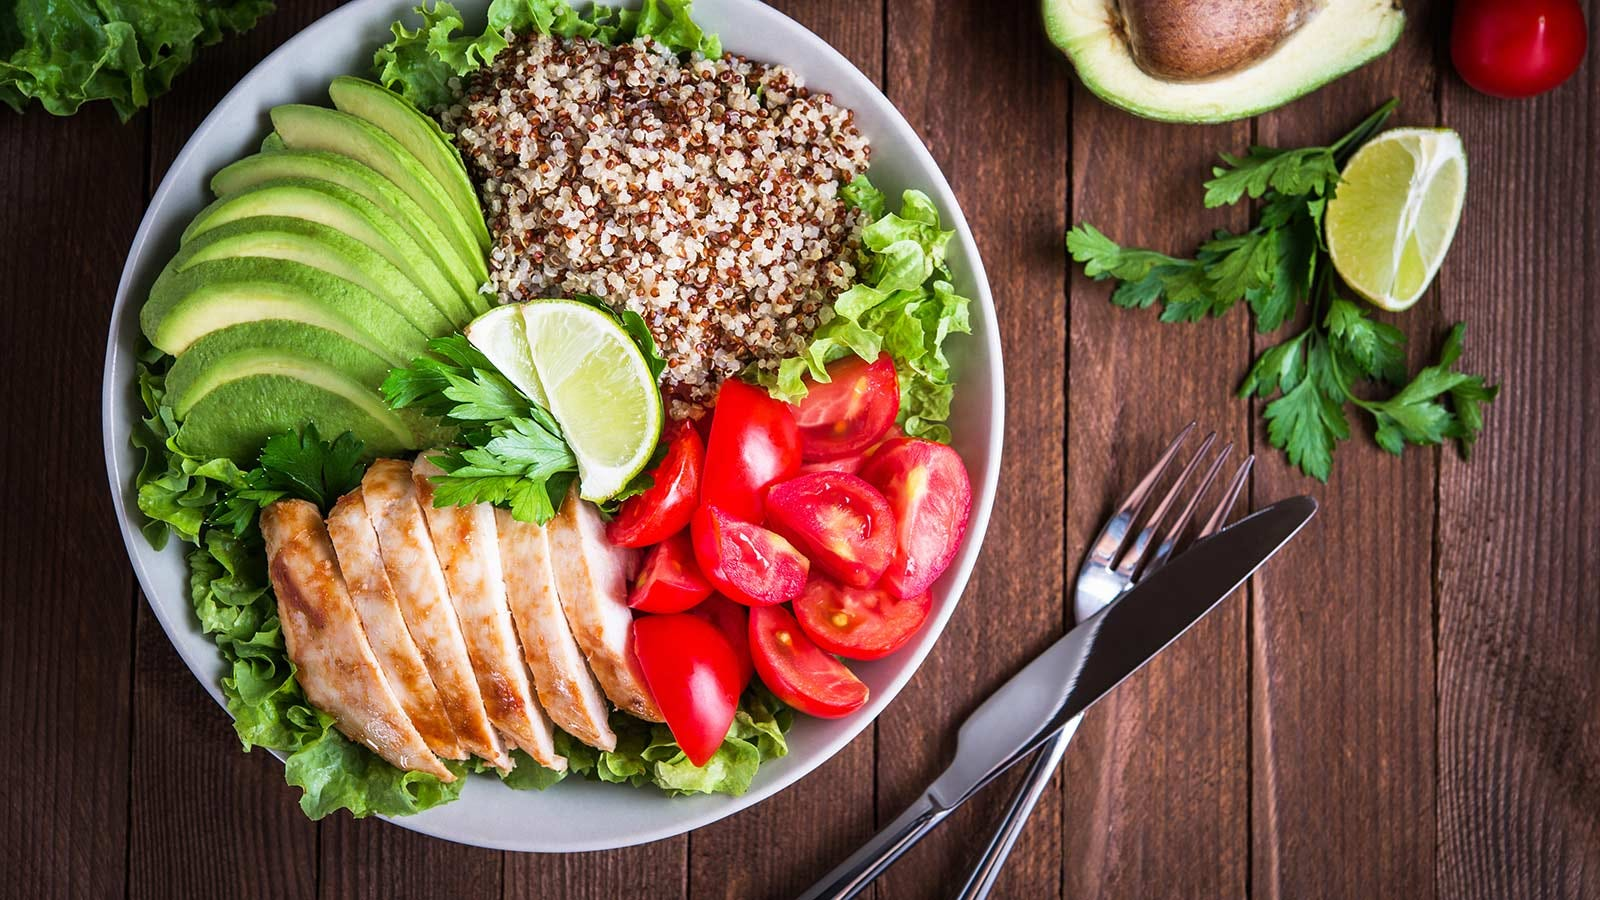 A plate loaded with salad and quinoa, and sliced tomatoes, chicken, avocados, and limes.